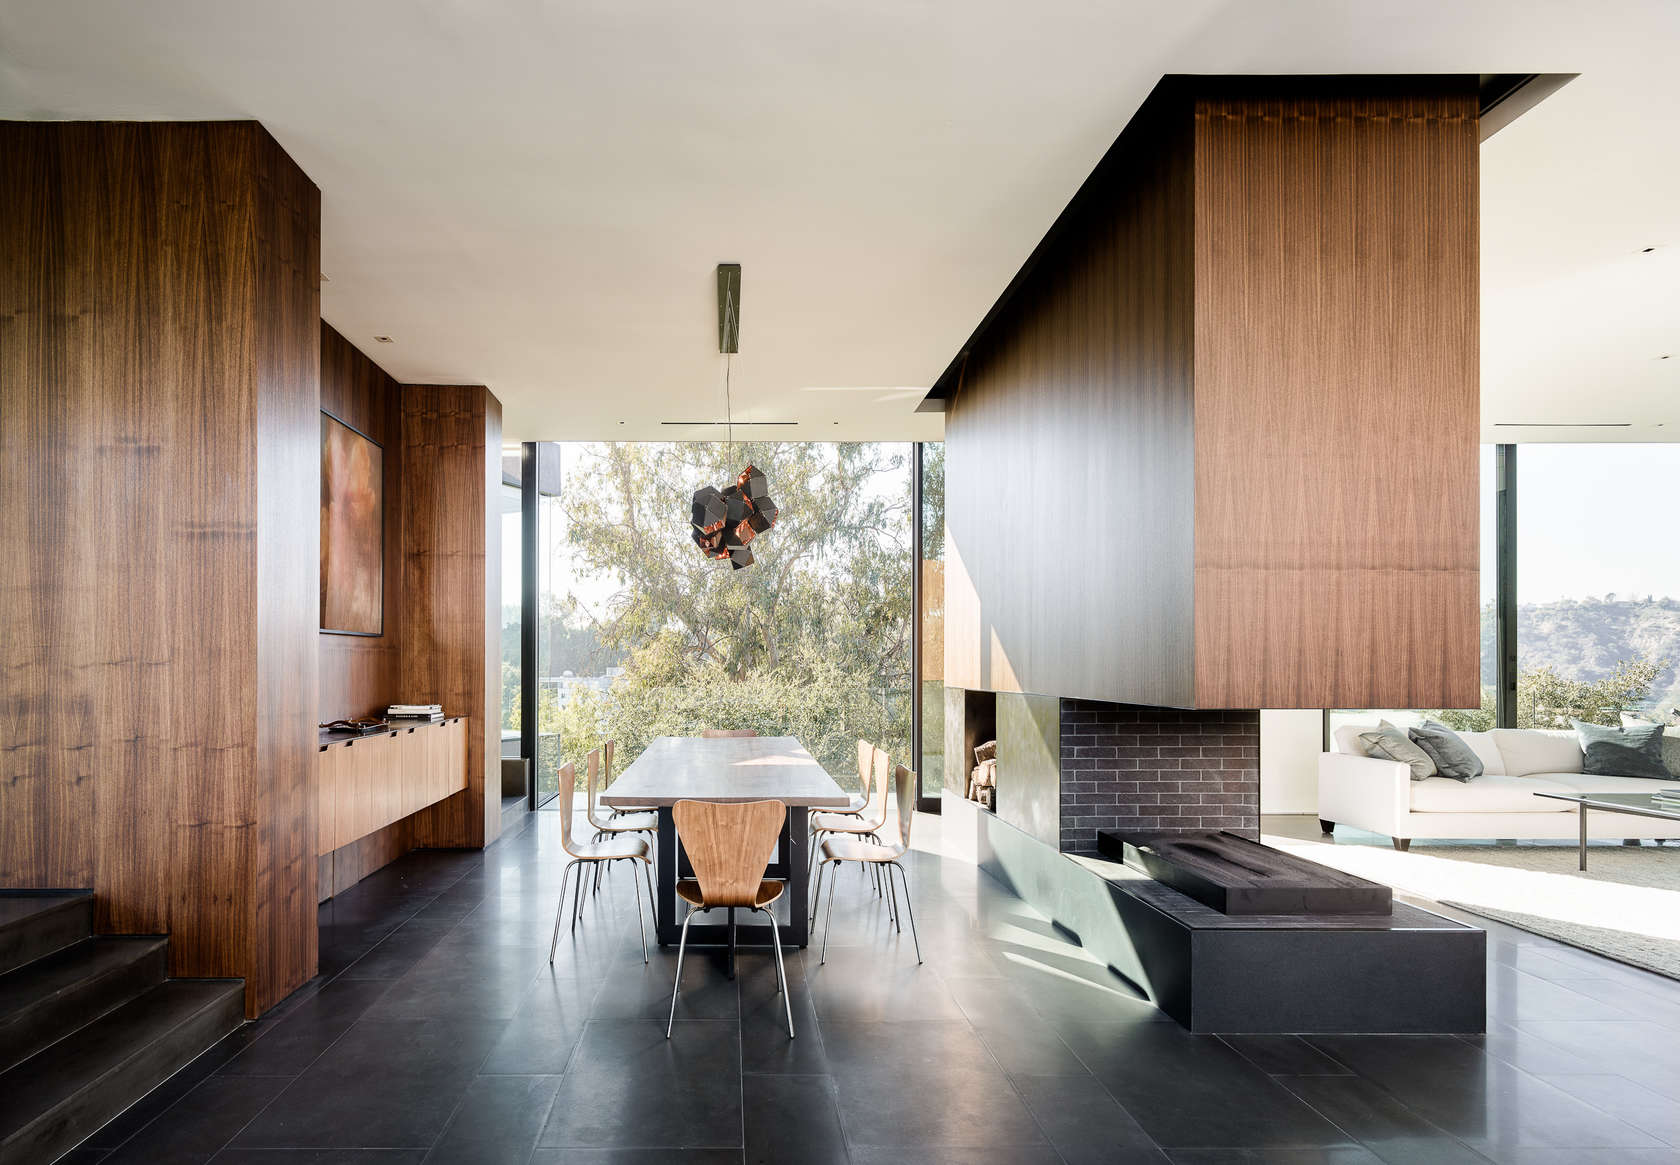 Open Floorplan Dining Room - An upside down beverly hills home with a minimalist exterior